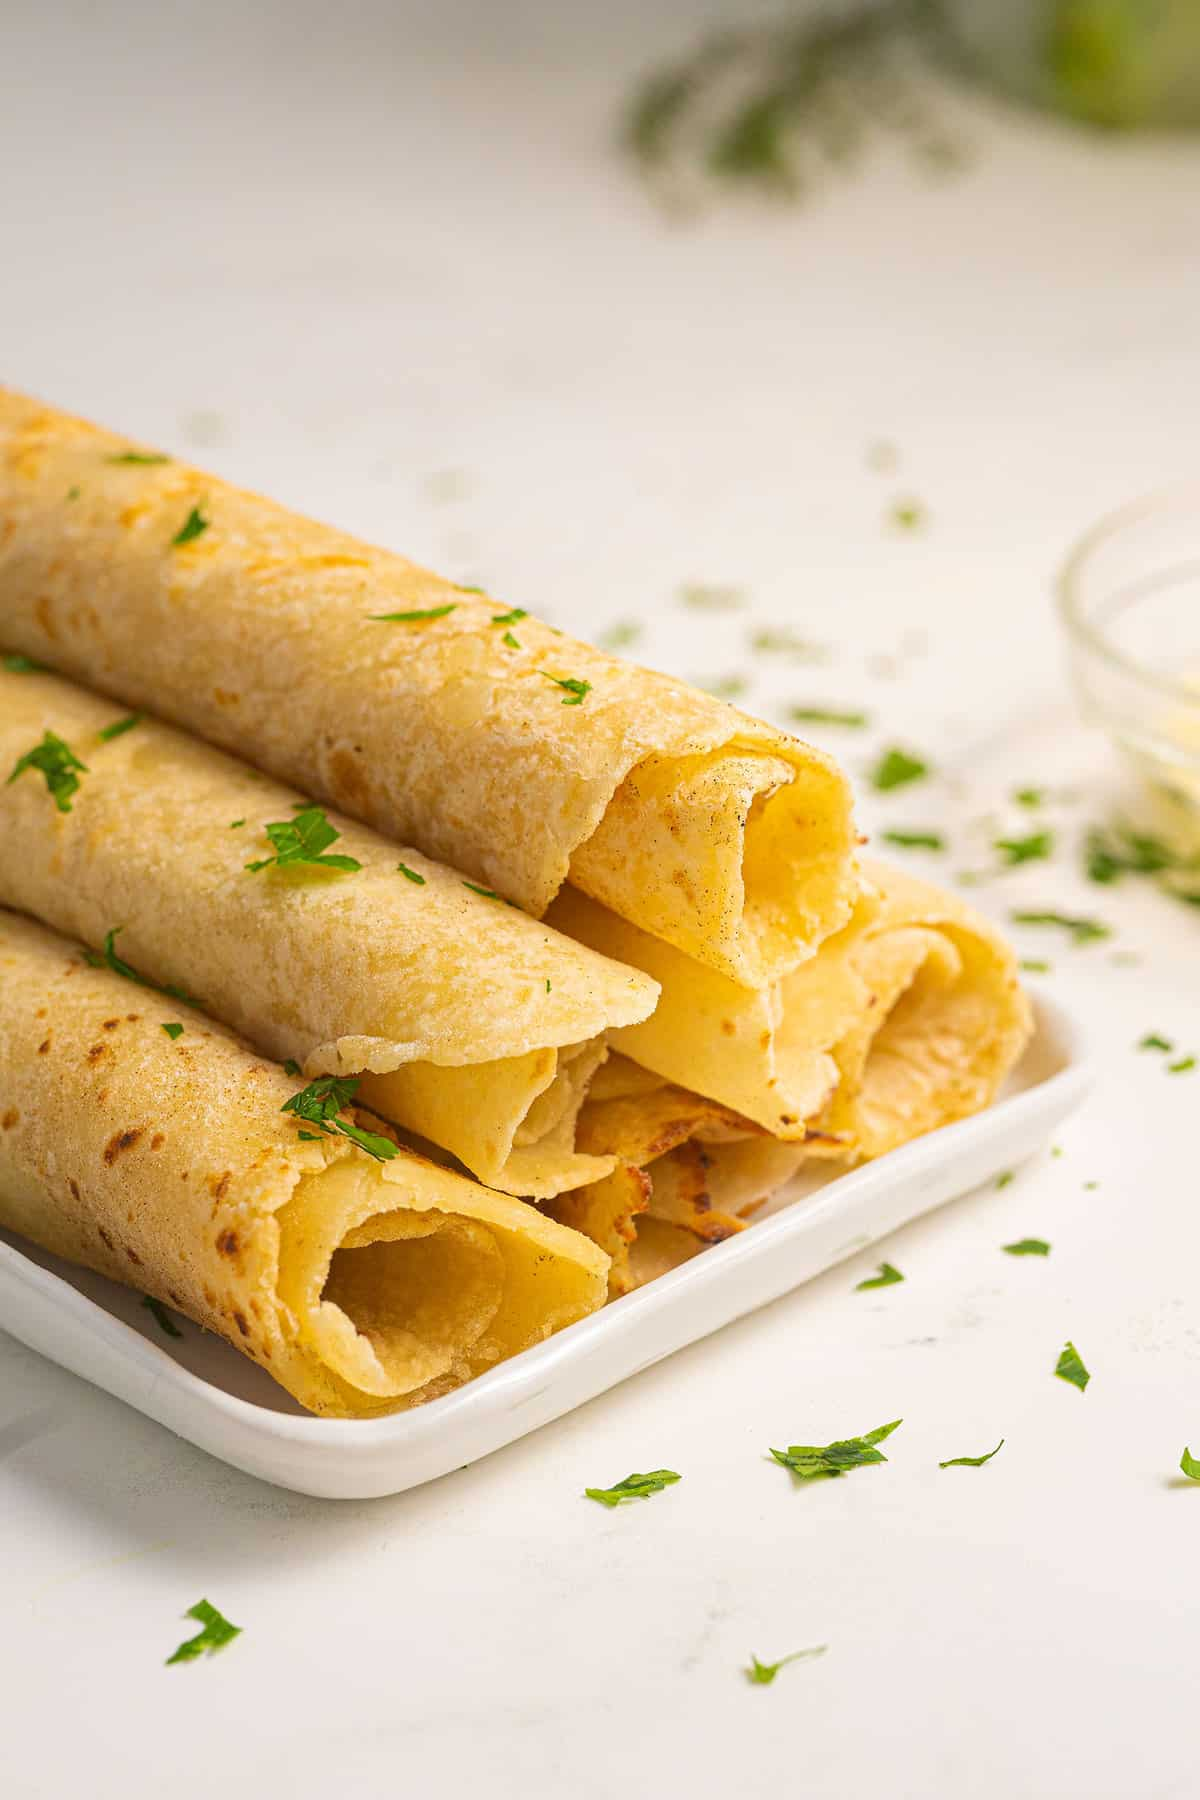 Potato Lefse rolled up on a plate